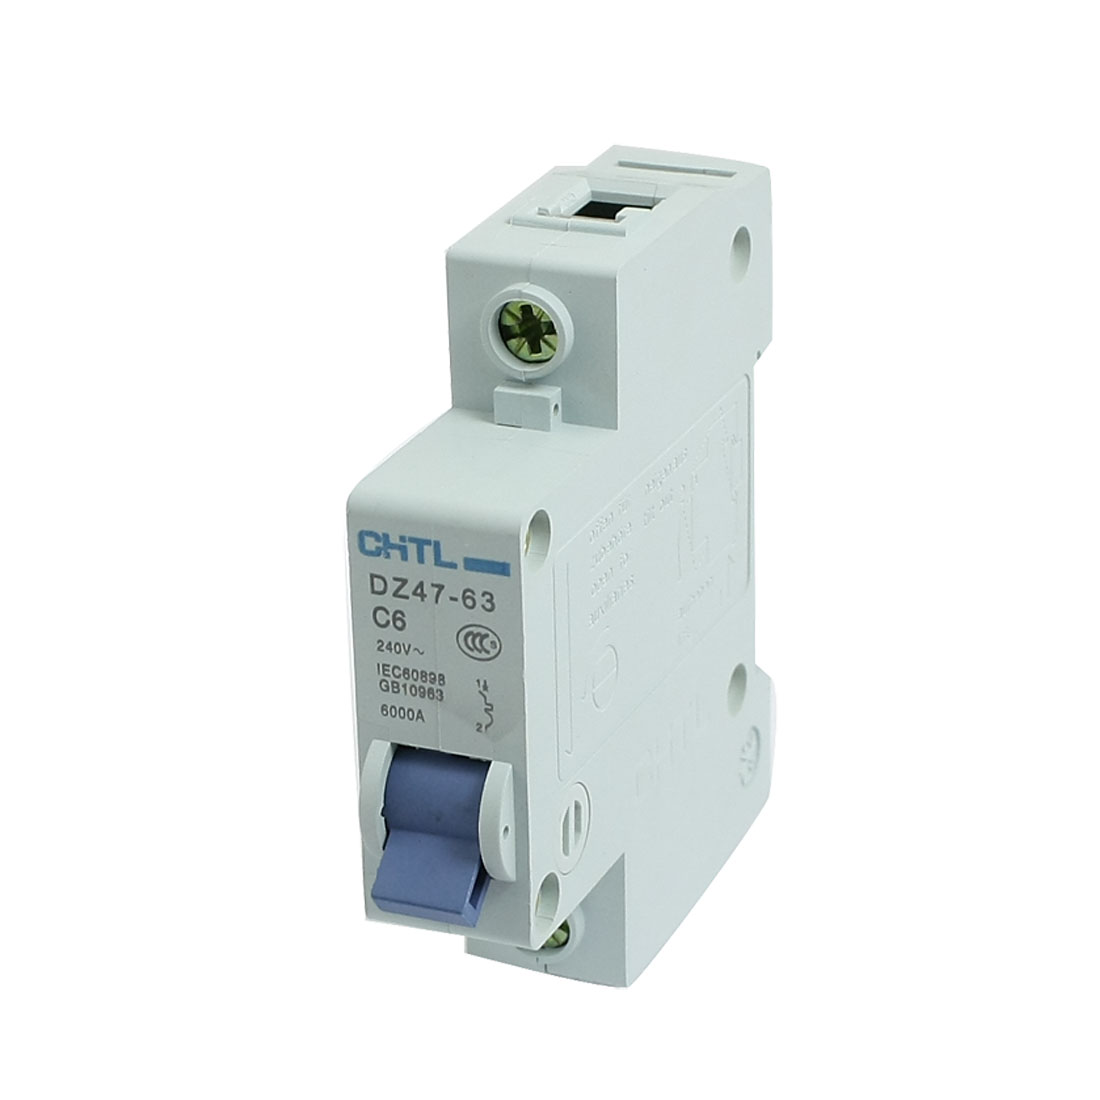 DZ47-63-C6-Single-Pole-Overload-Miniature-Circuit-Breaker-AC-240V-6000A